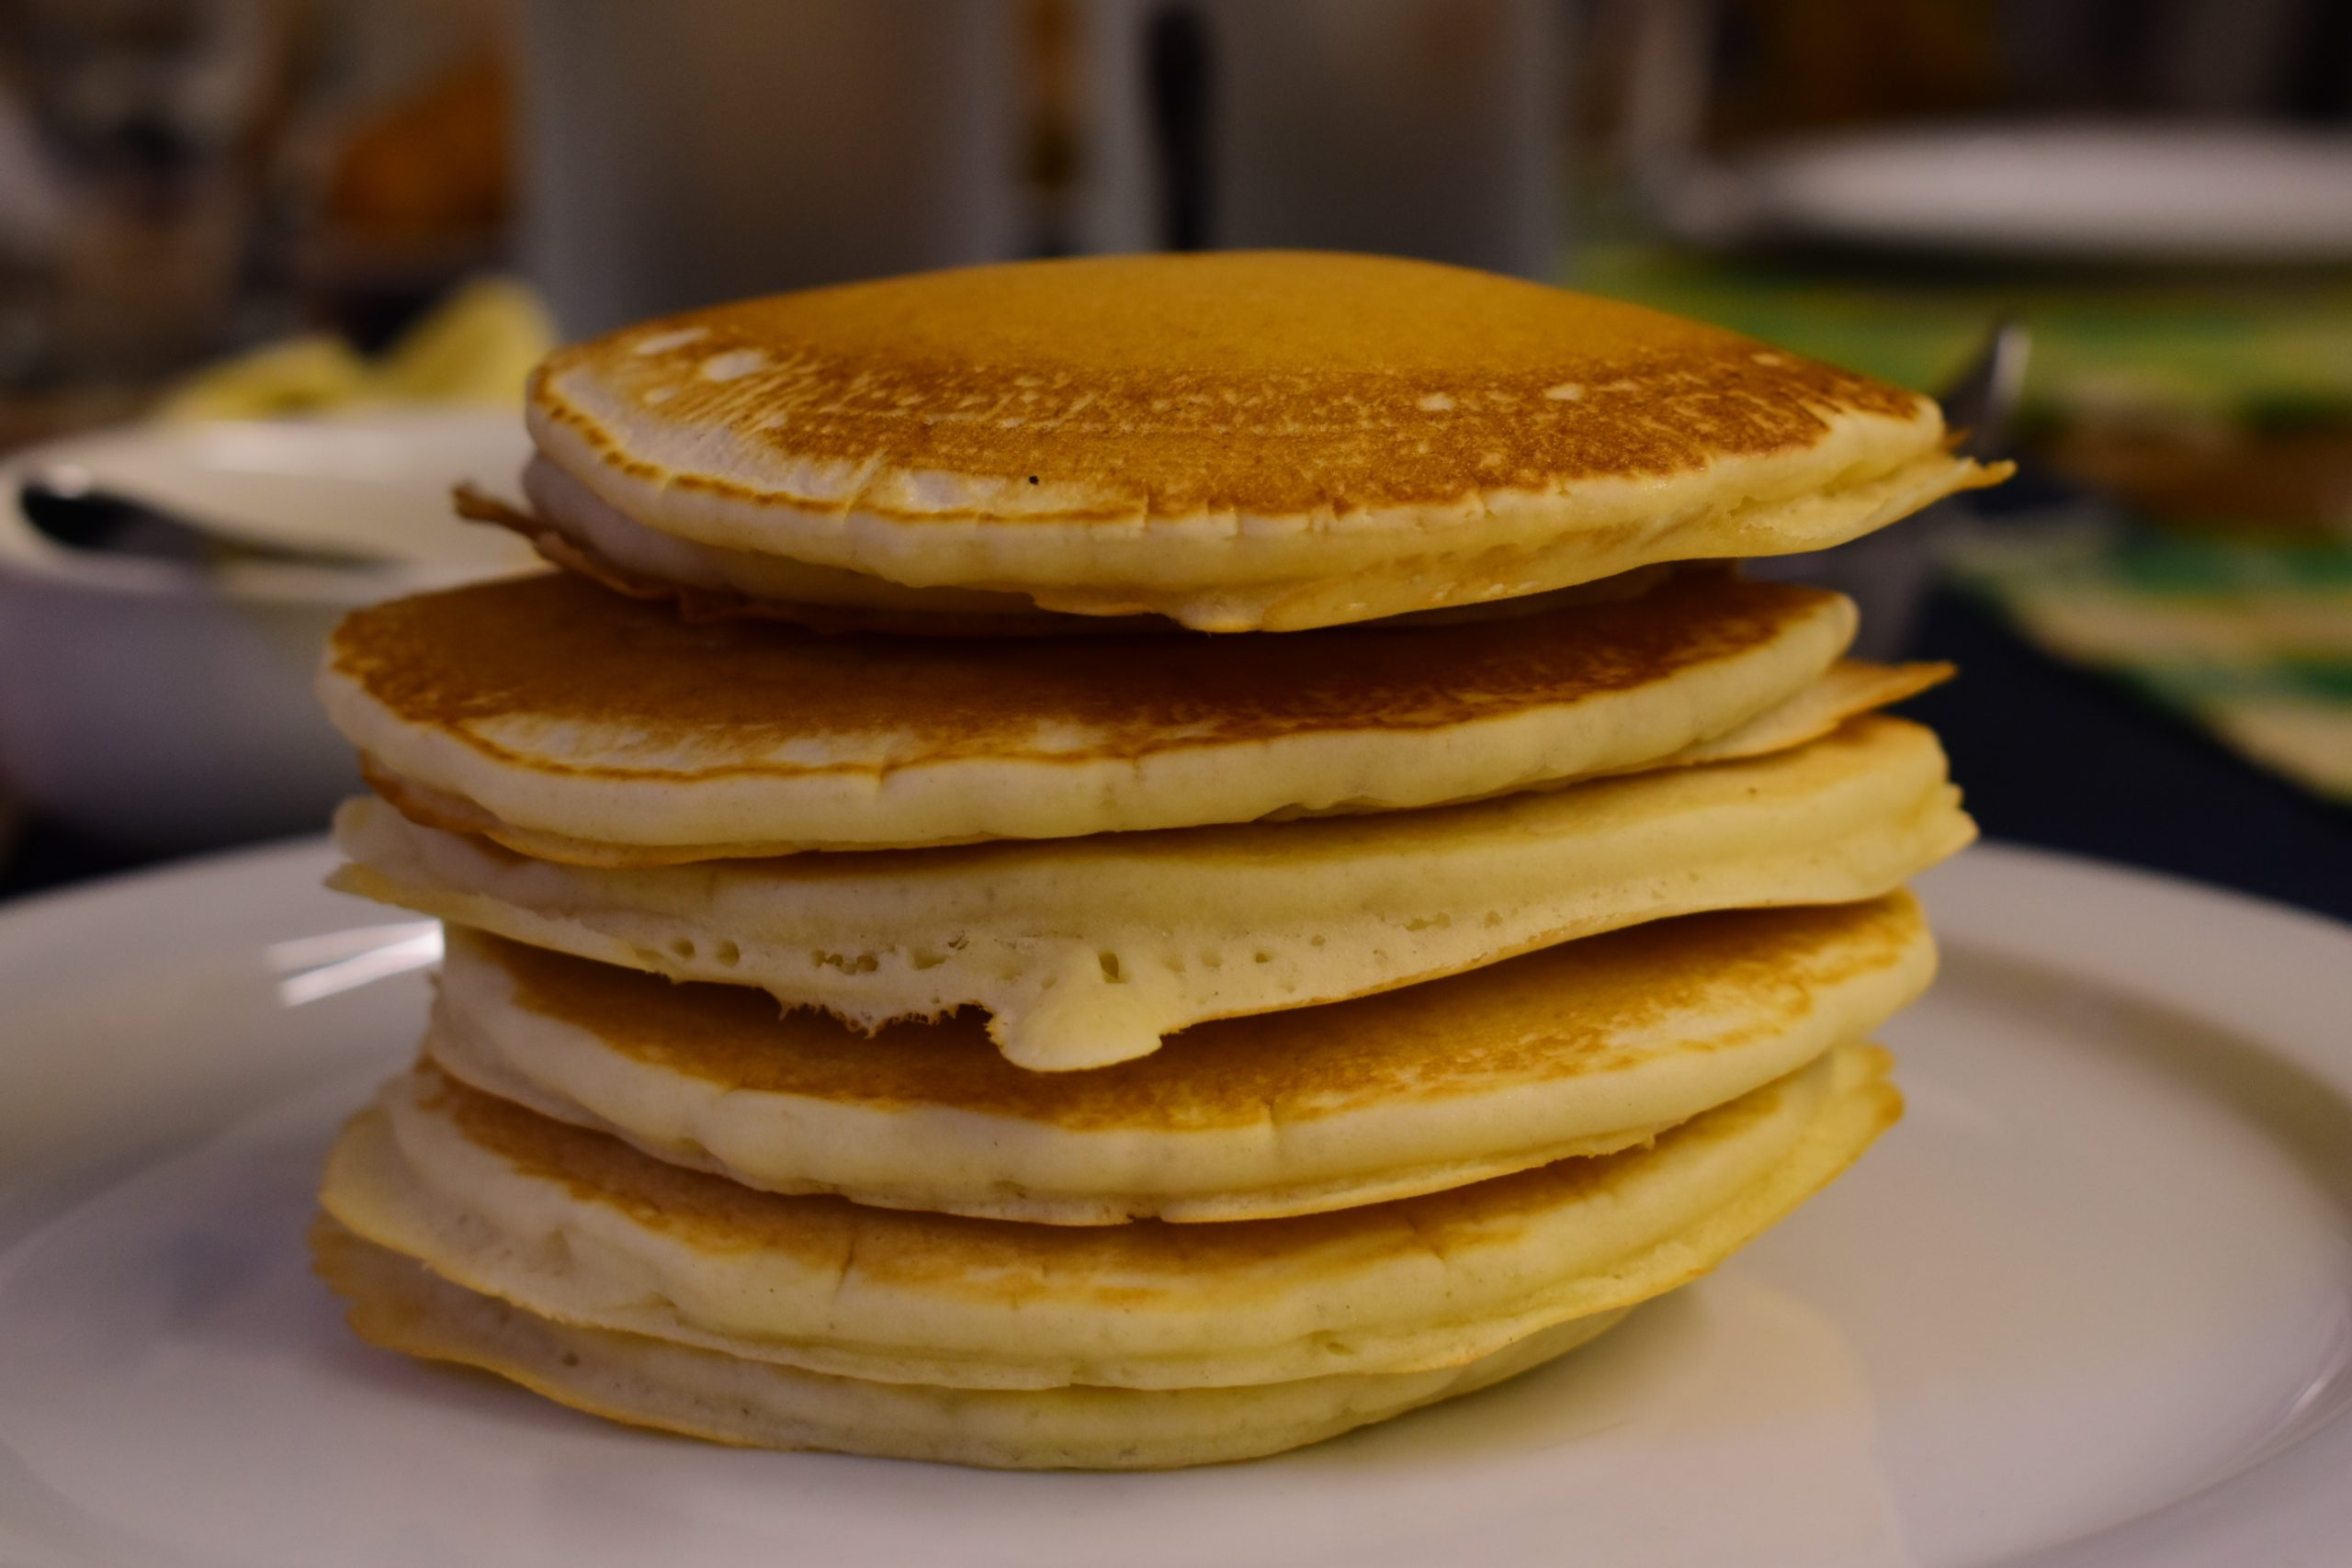 Light eggless and lactose-free pancakes